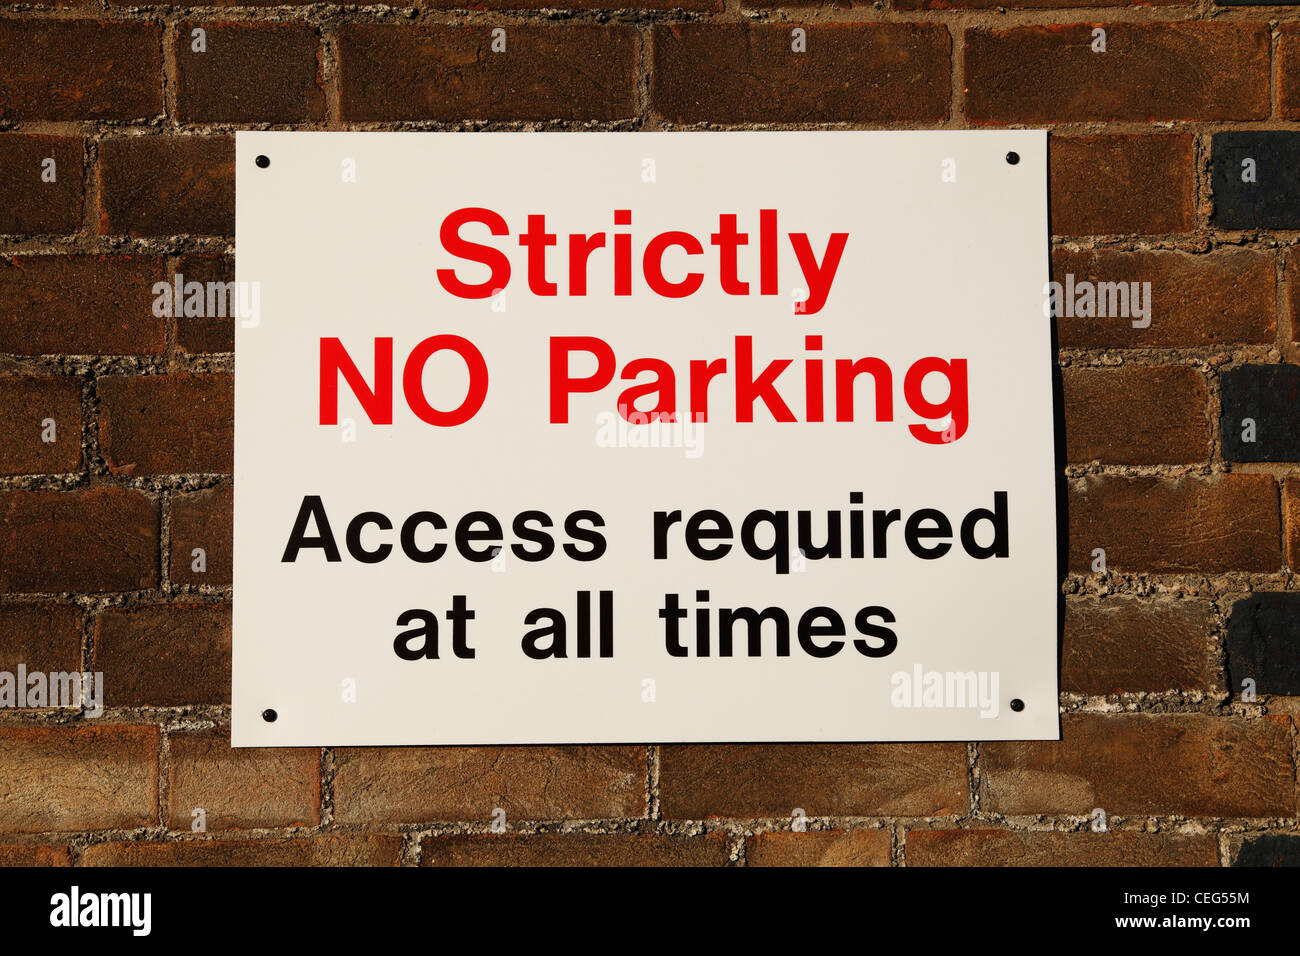 A no parking sign on a street in the U.K. - Stock Image